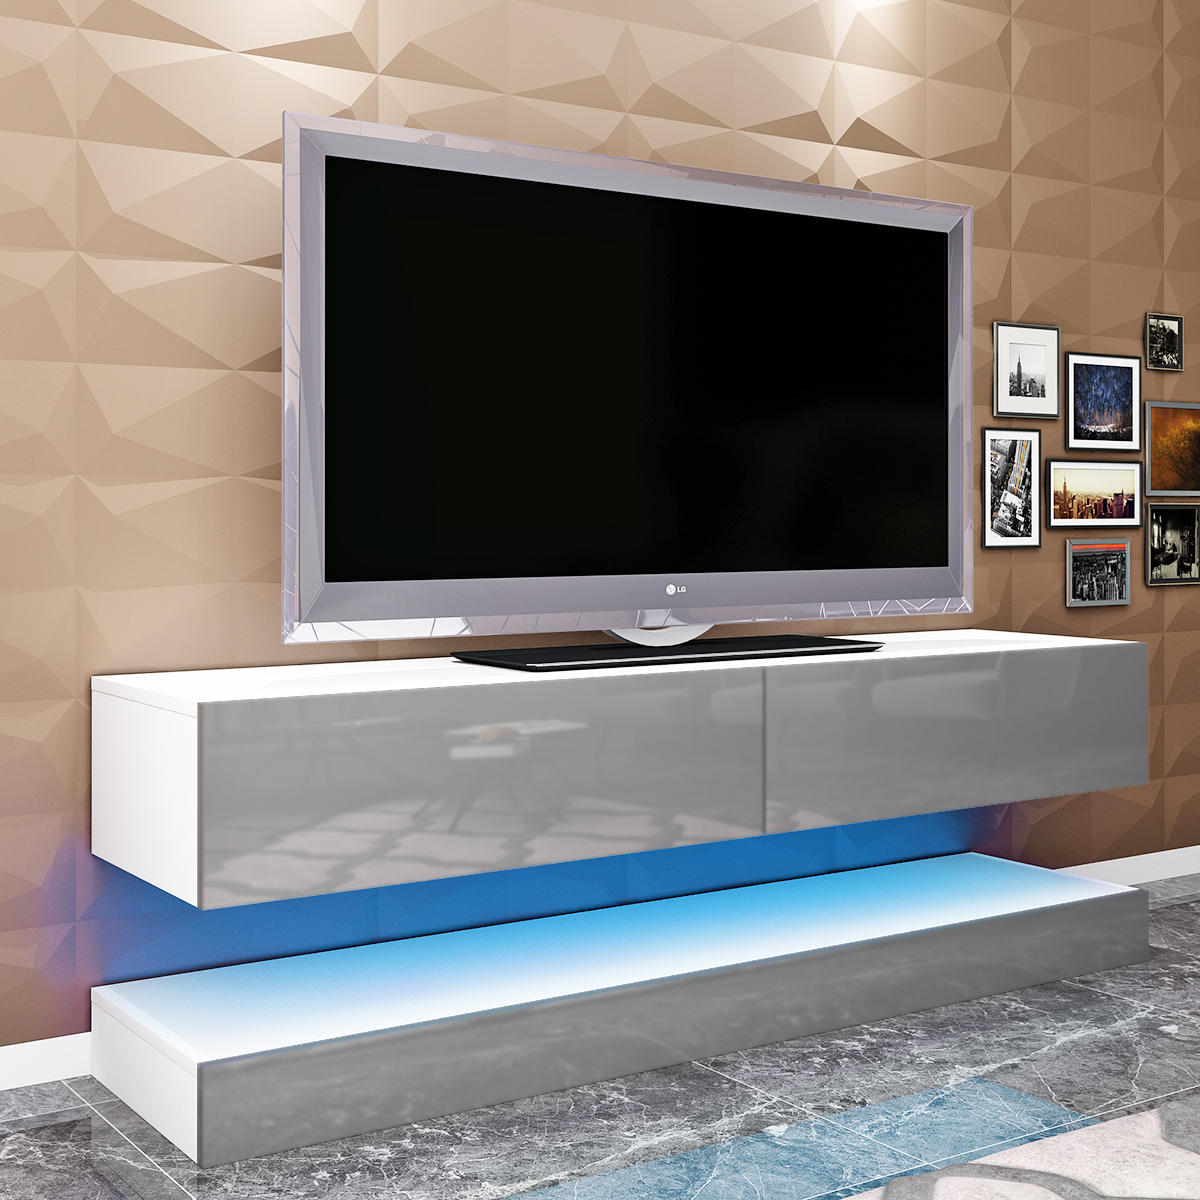 New led tv stand tv wall unit floating 140cm cabinet hanging with light